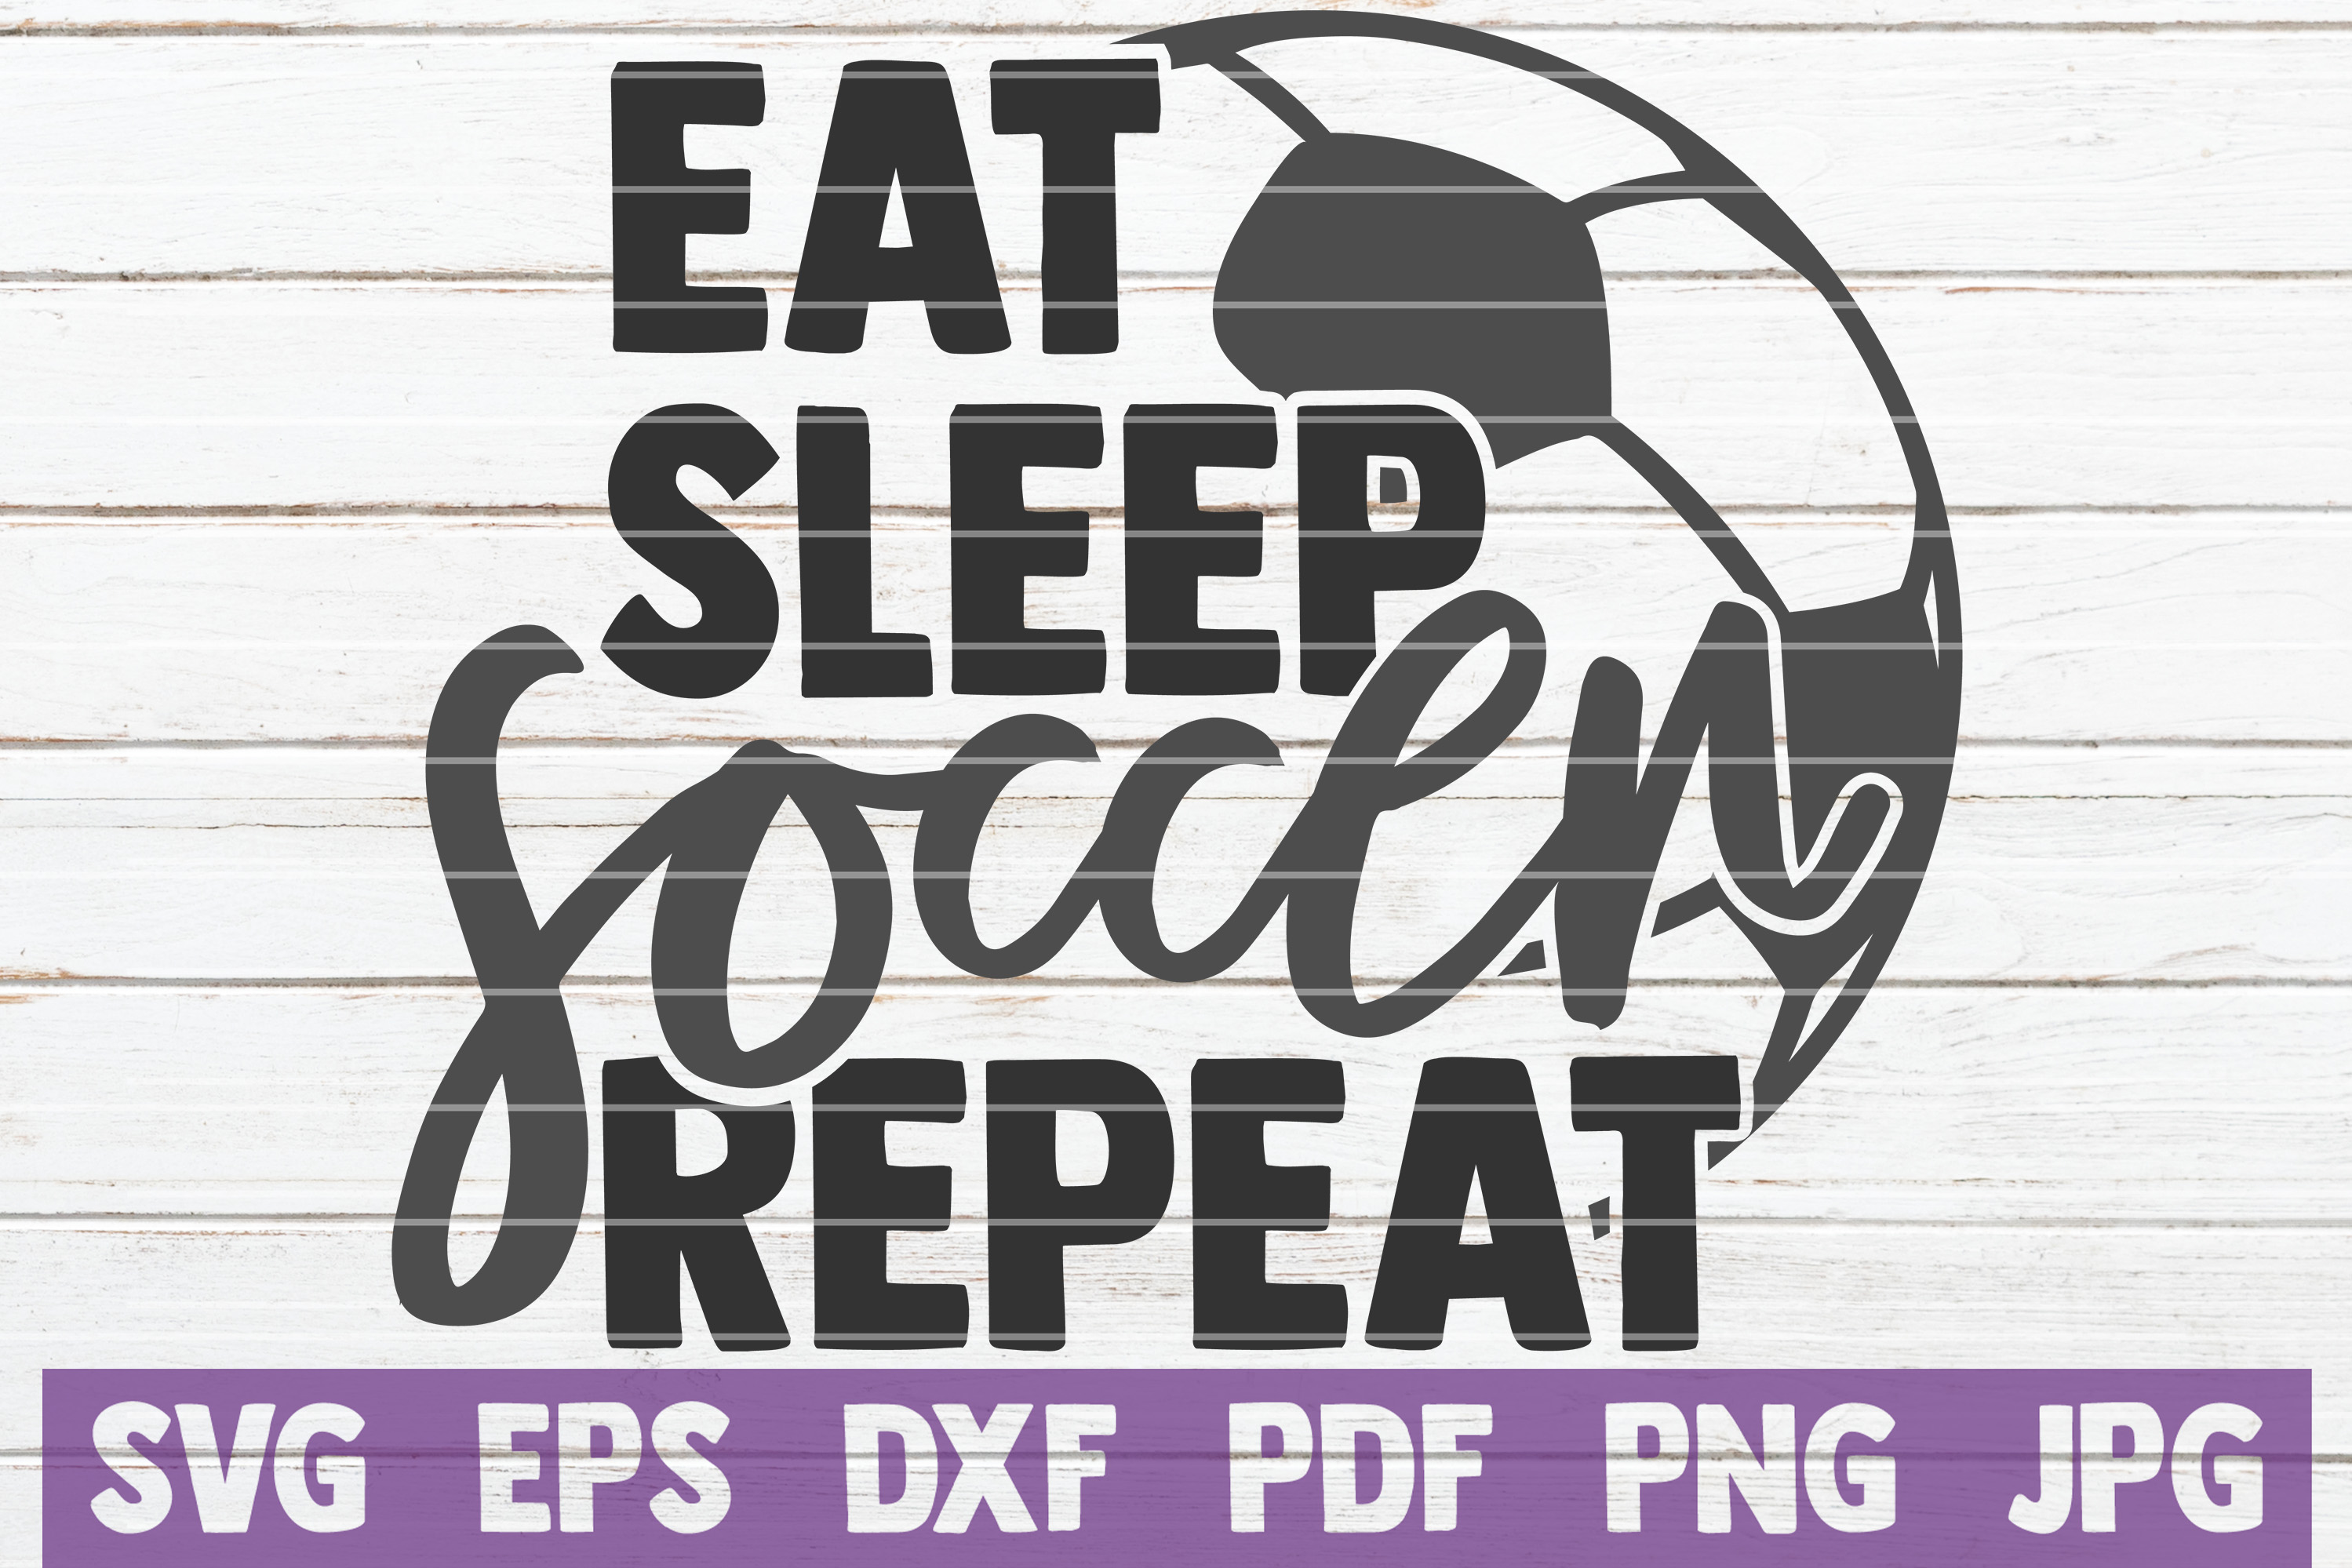 Download Free Eat Sleep Soccer Repeat Svg Cut File Grafico Por for Cricut Explore, Silhouette and other cutting machines.